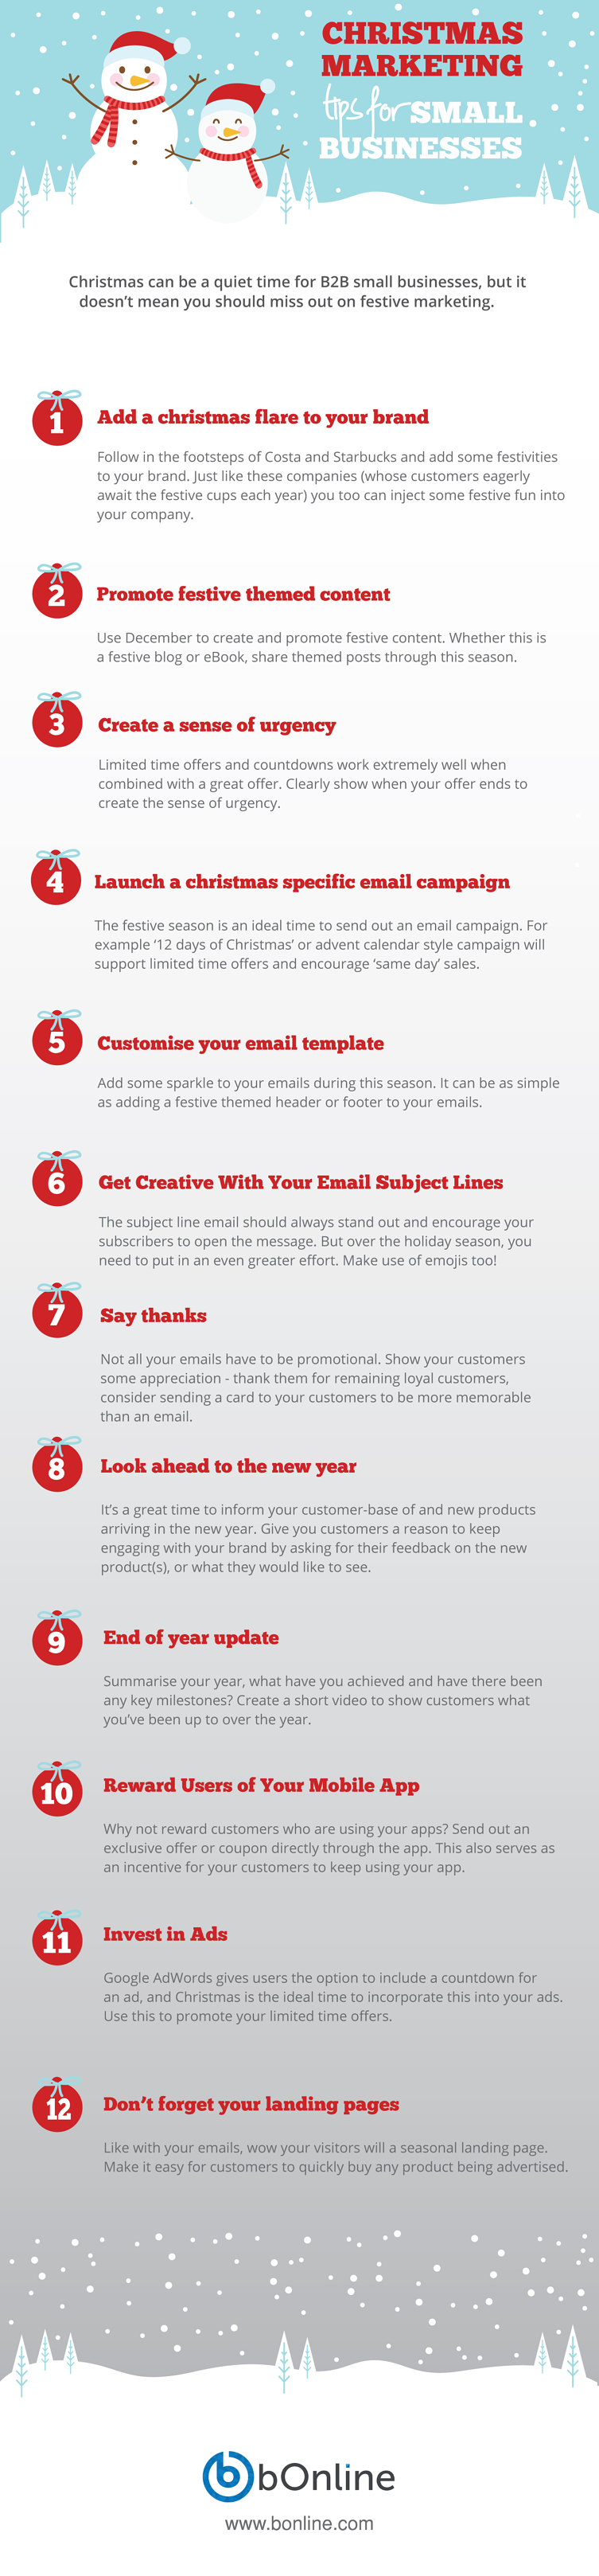 Christmas-marketing-tips-for-small-businesses